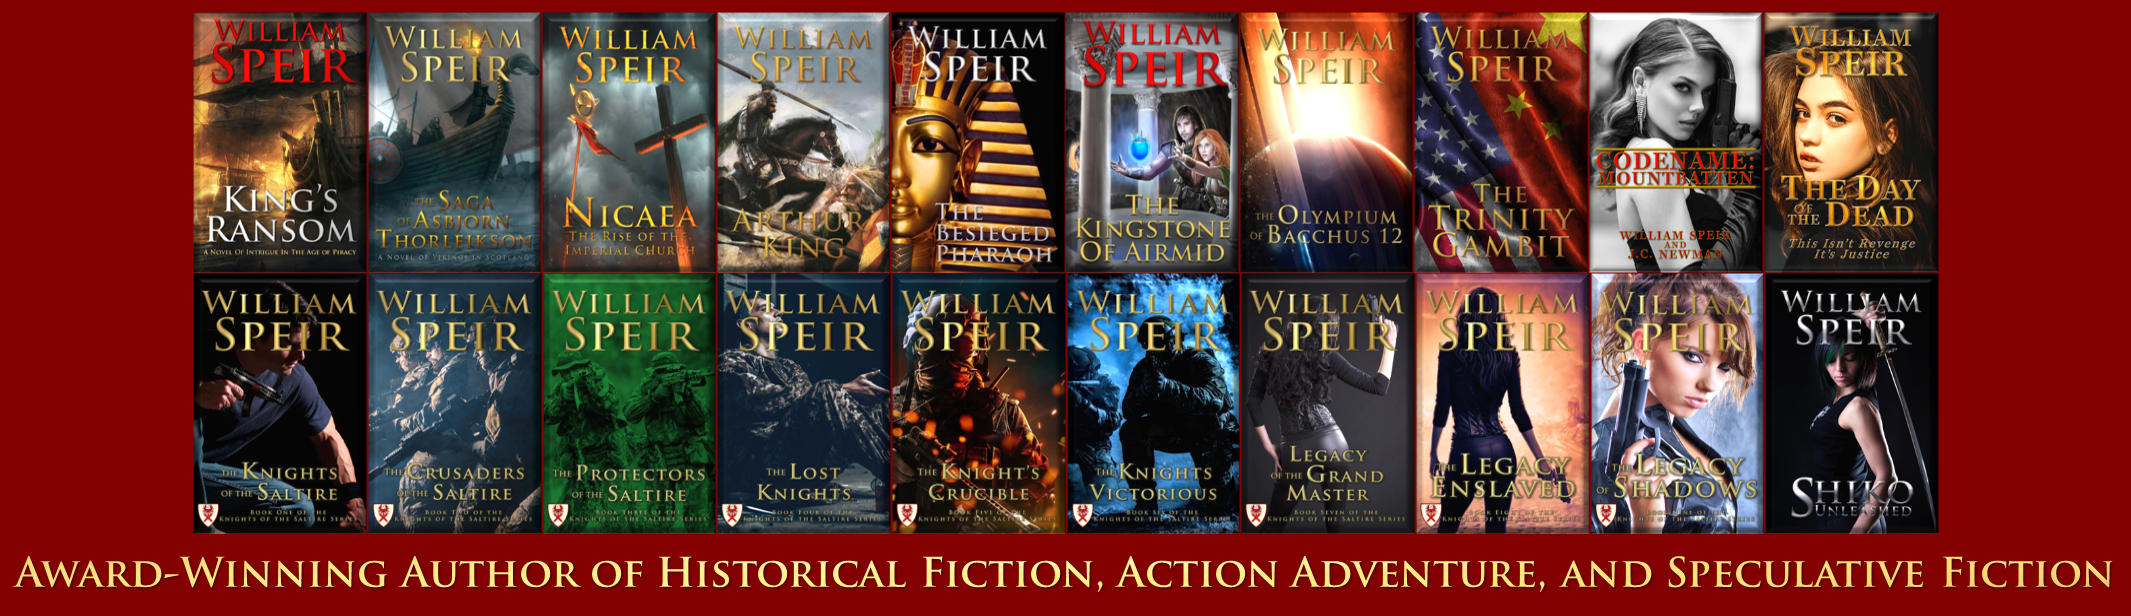 The Books of William Speir